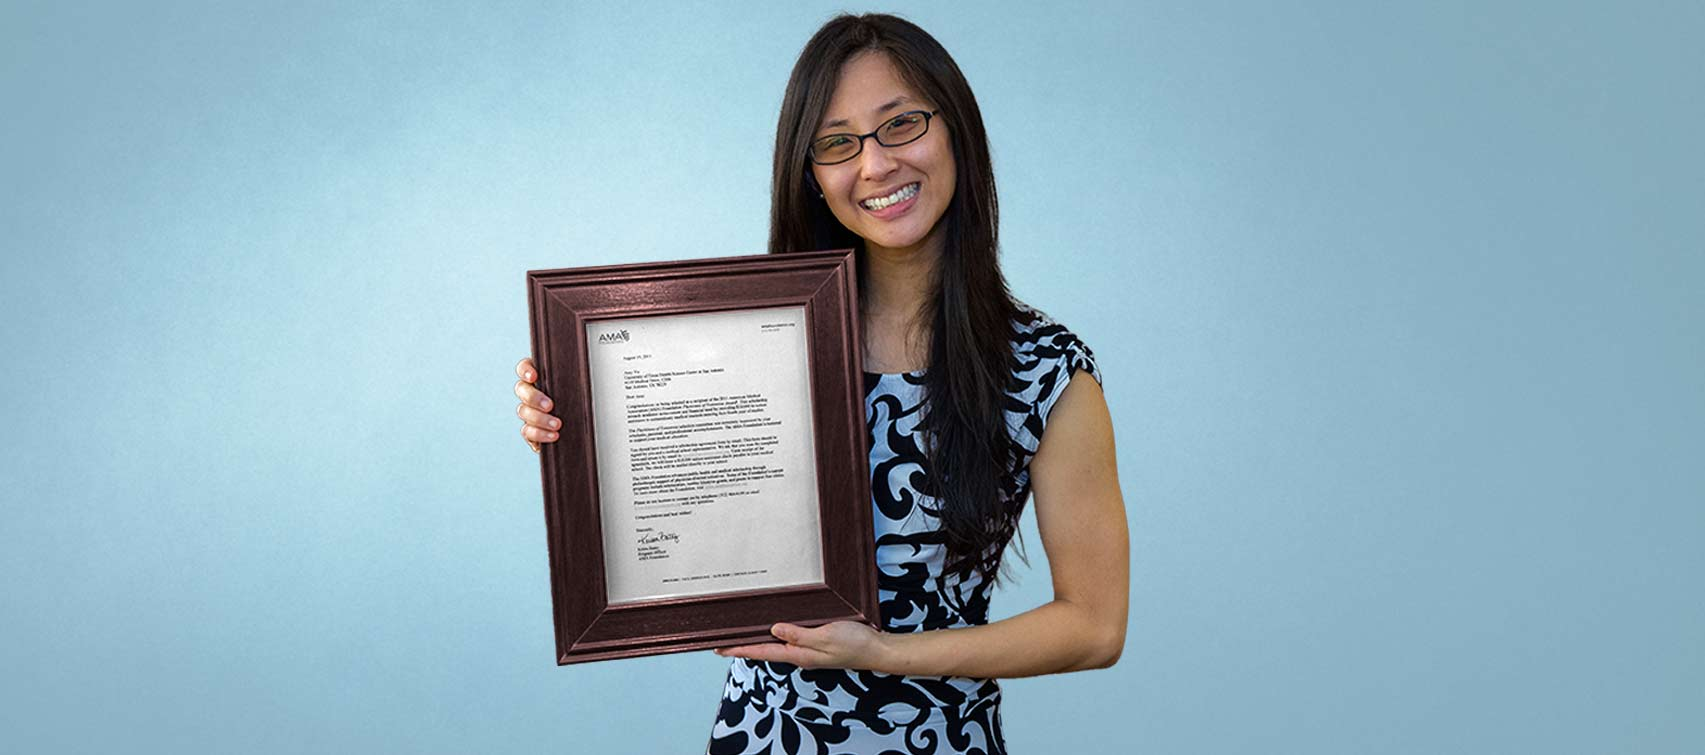 Amy Yu with American Medical Association Physician of Tomorrow award